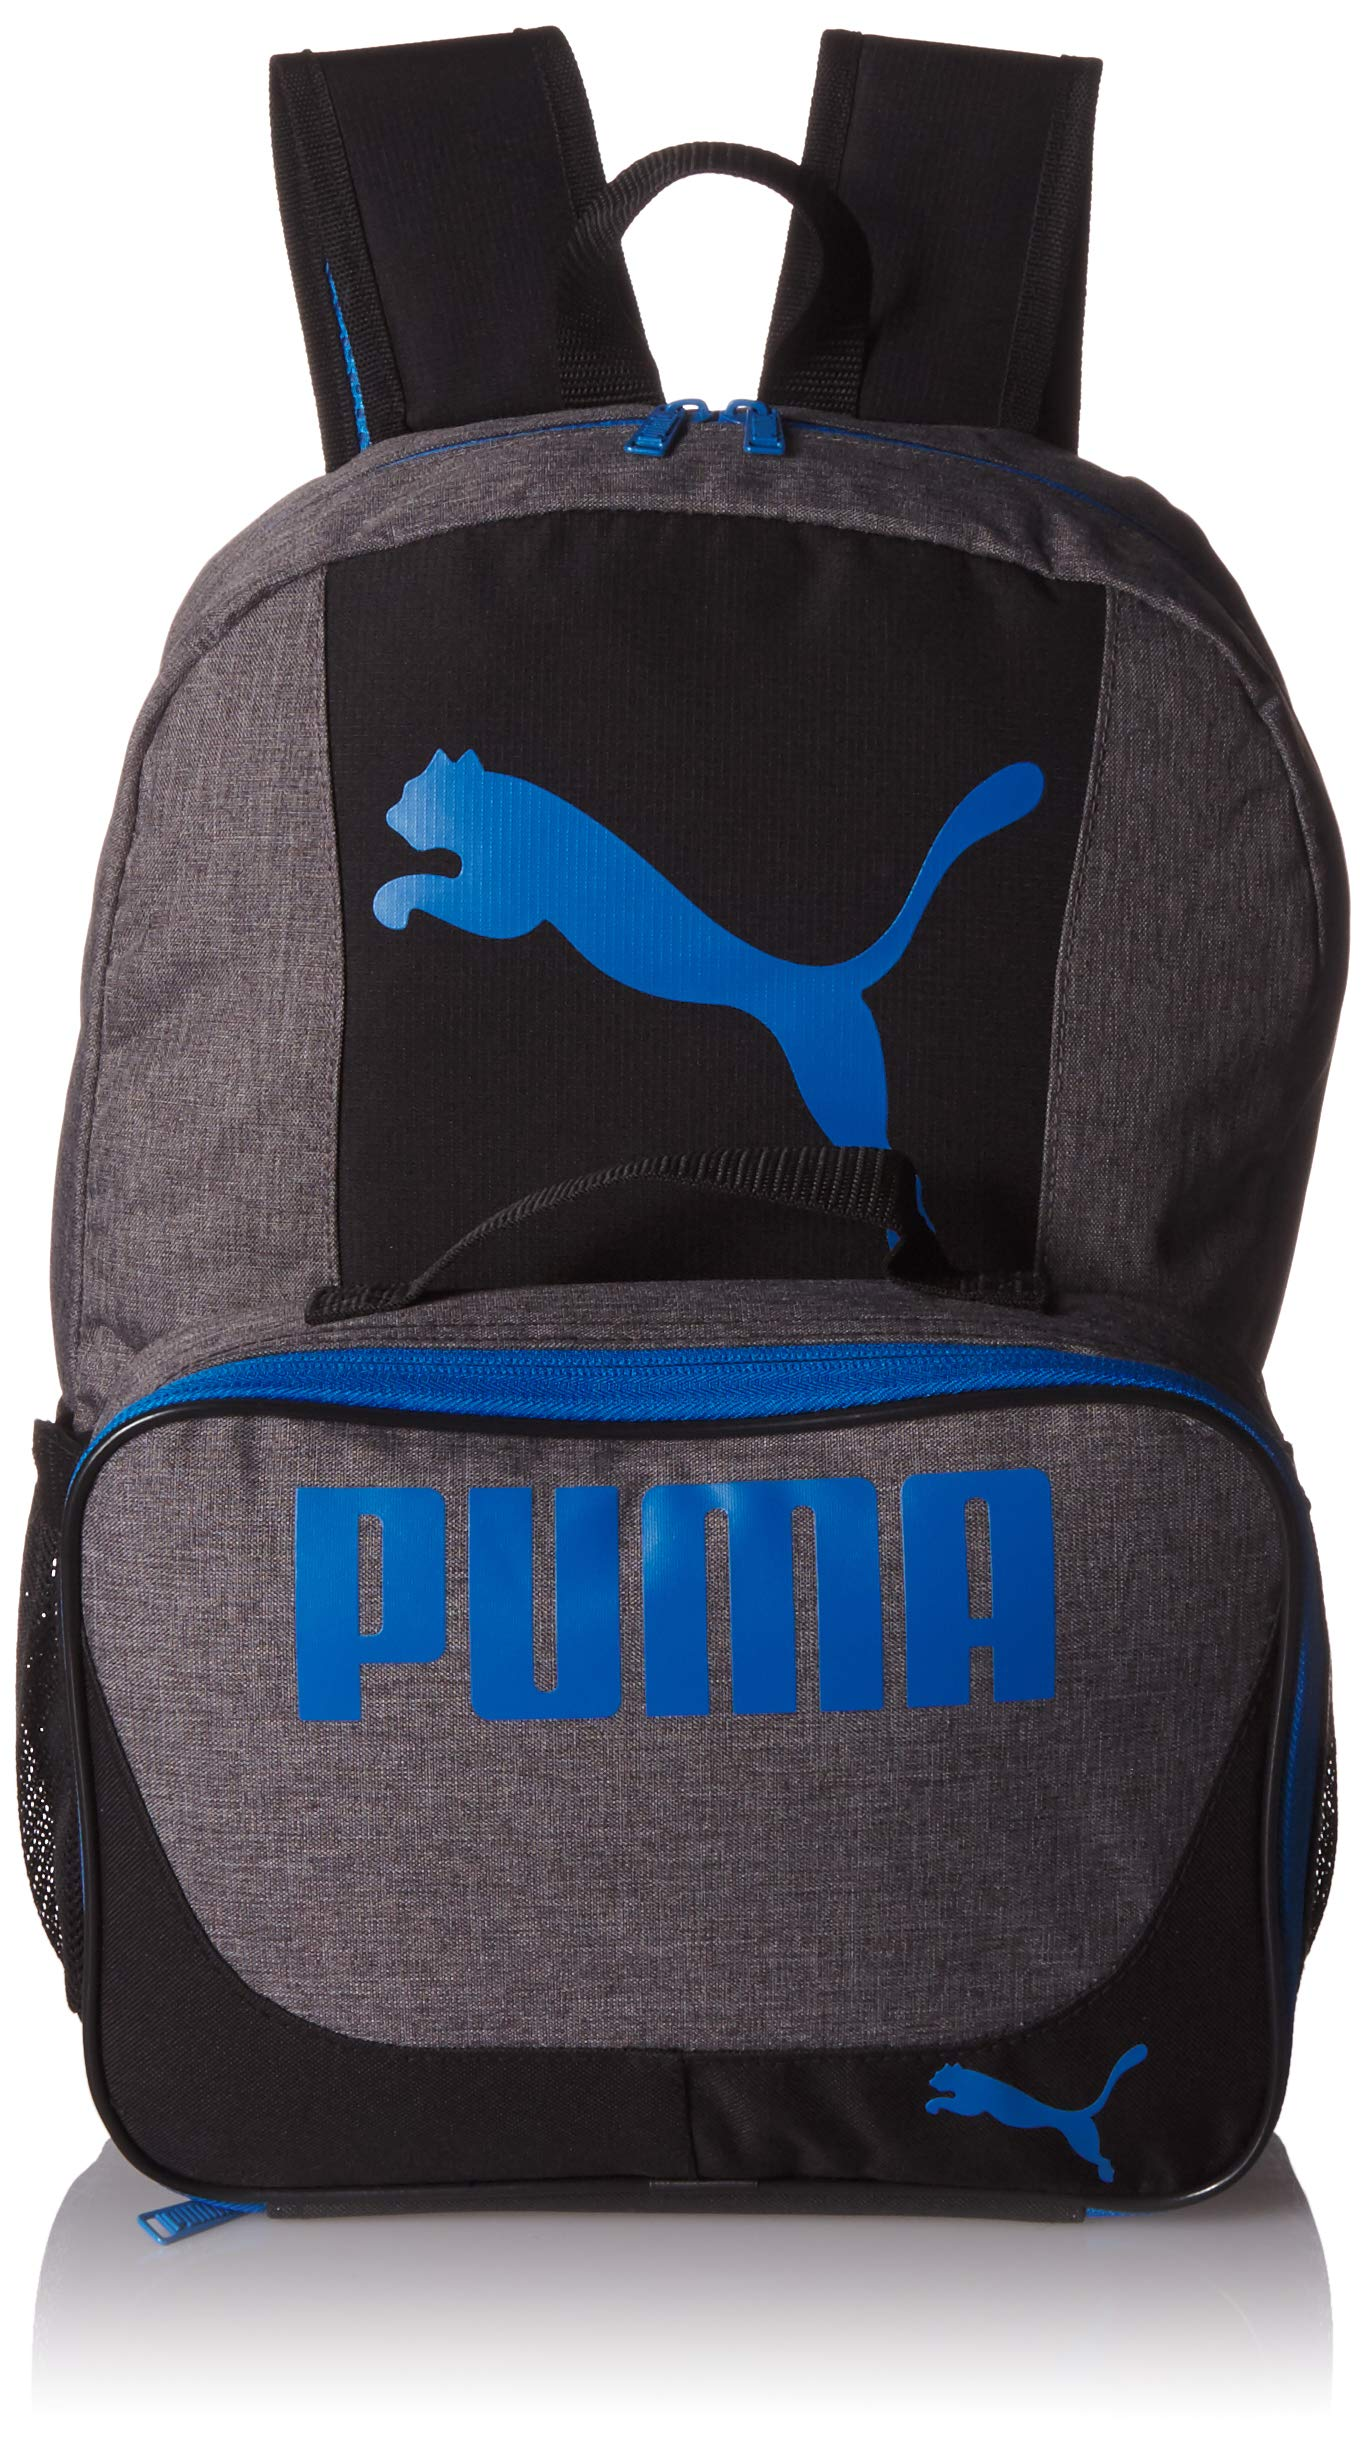 PUMA Boys' Little Backpacks and Lunch Boxes, Gray/Blue Kit, Youth by PUMA